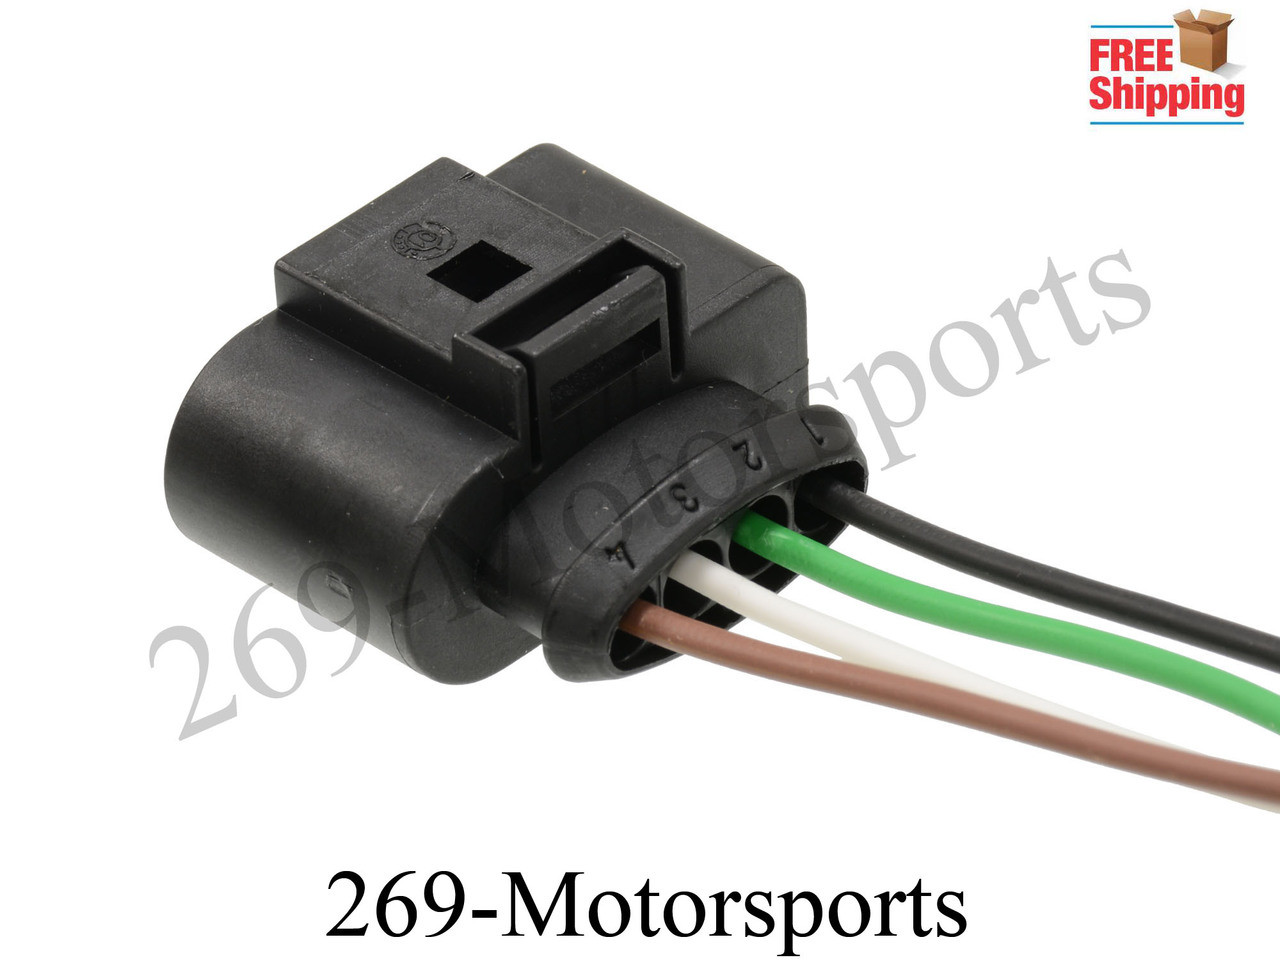 Ignition Coil Wiring Harness Repair Kit : Ignition coil connector repair kit harness wiring fits